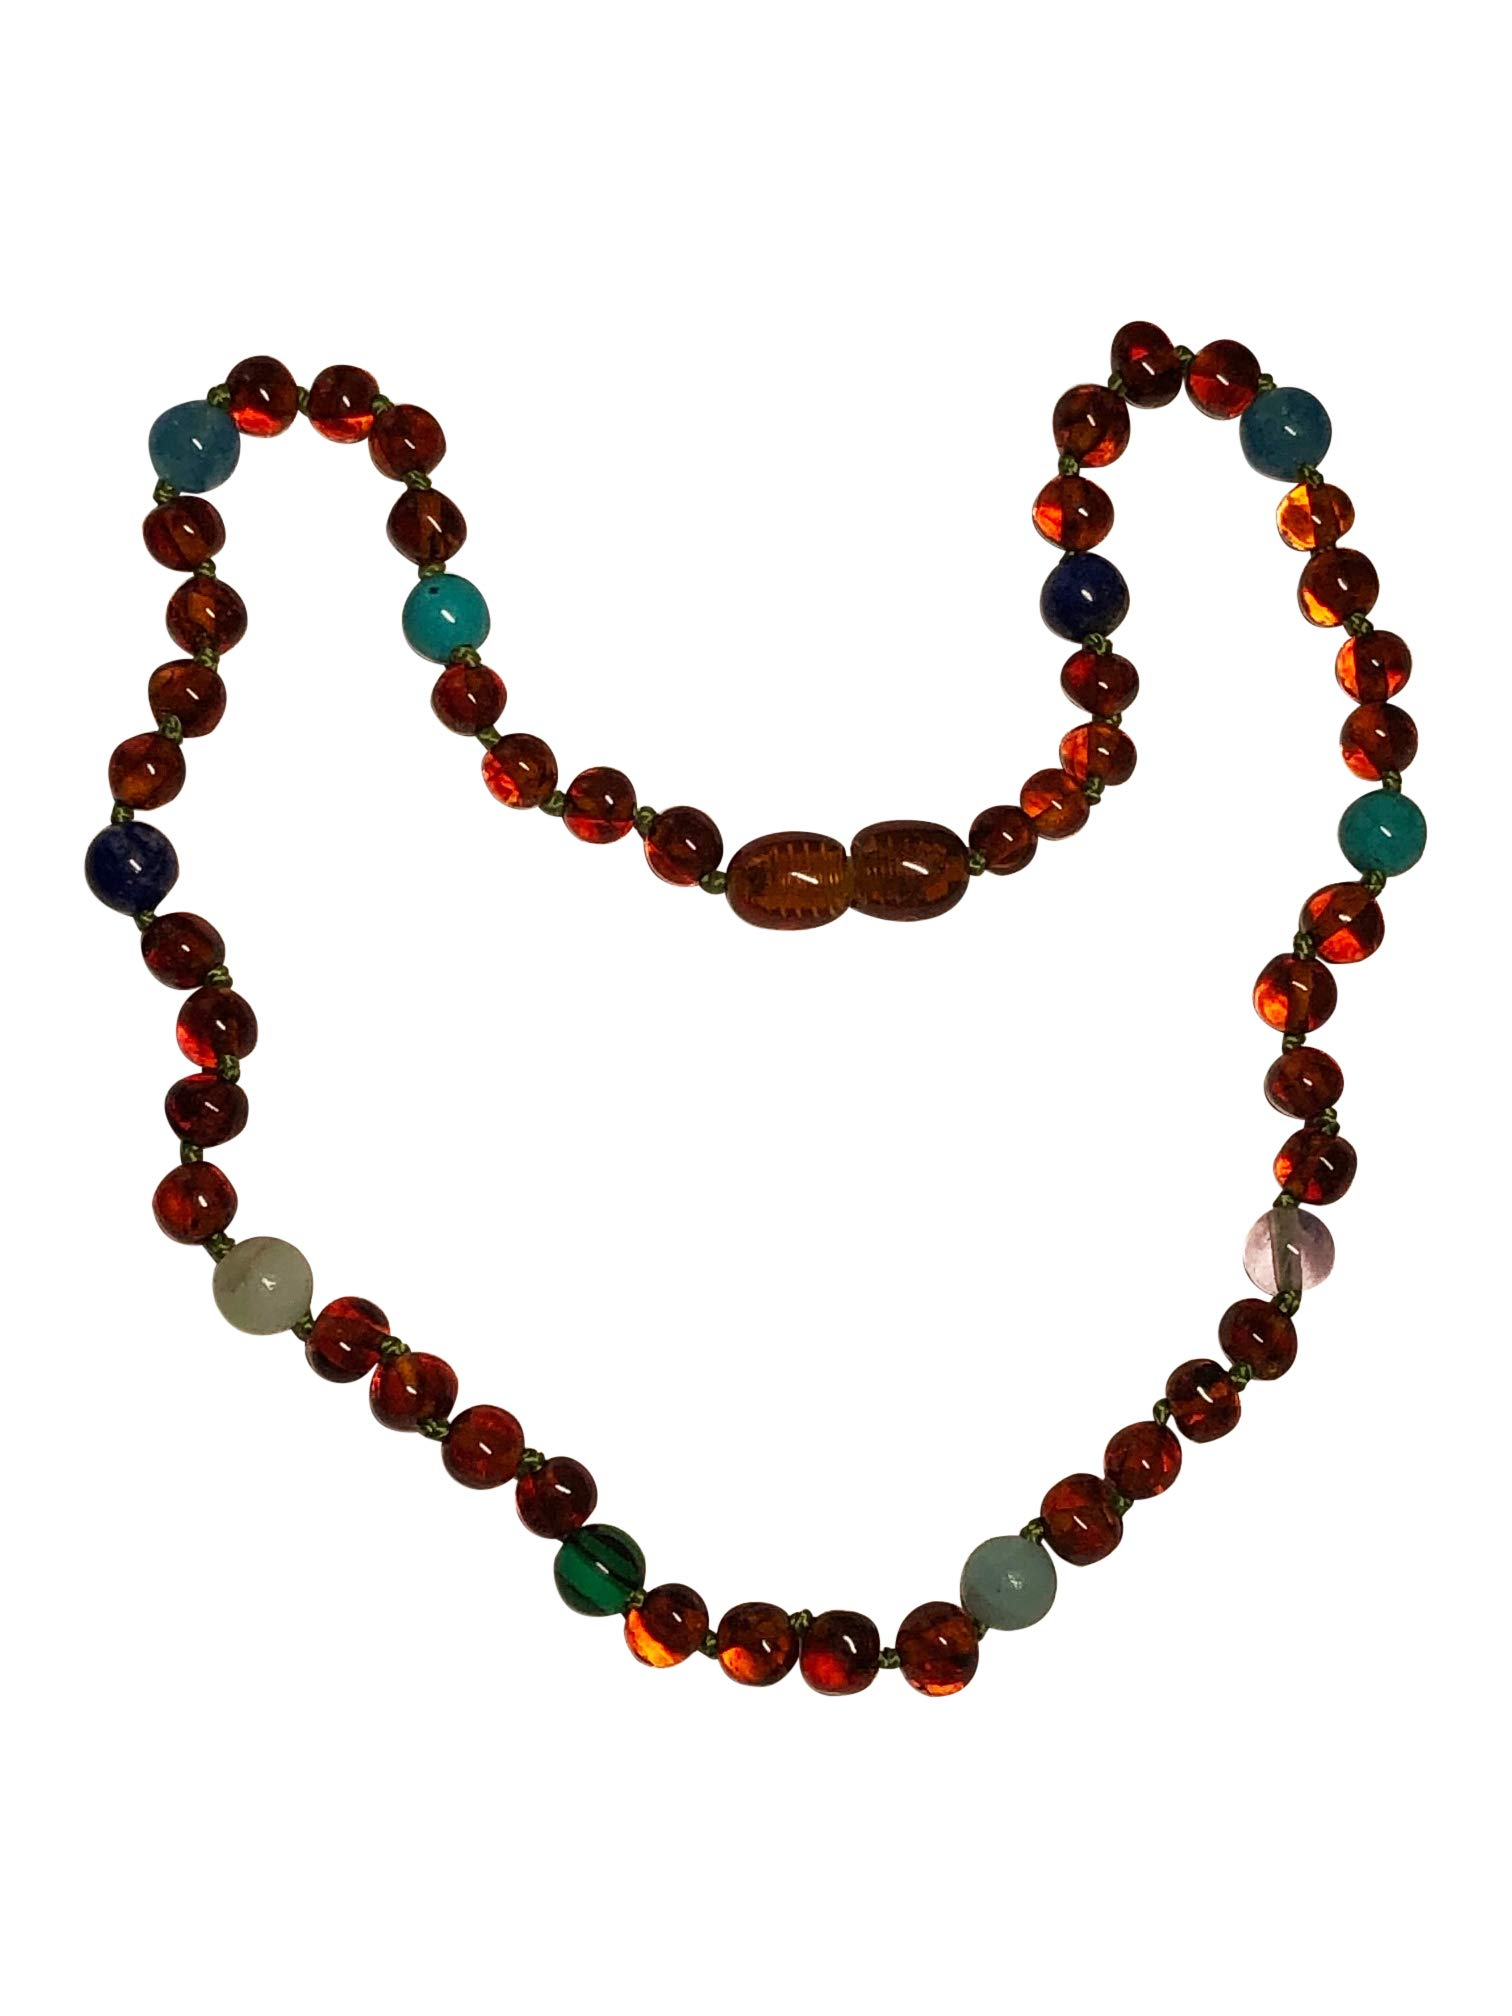 Baltic Amber Necklace For Kids and Teens- 15 inches - Boost Immune System - For Ages 4-16 - Natural Pain Relief- Certified (Polished Blue/Green)